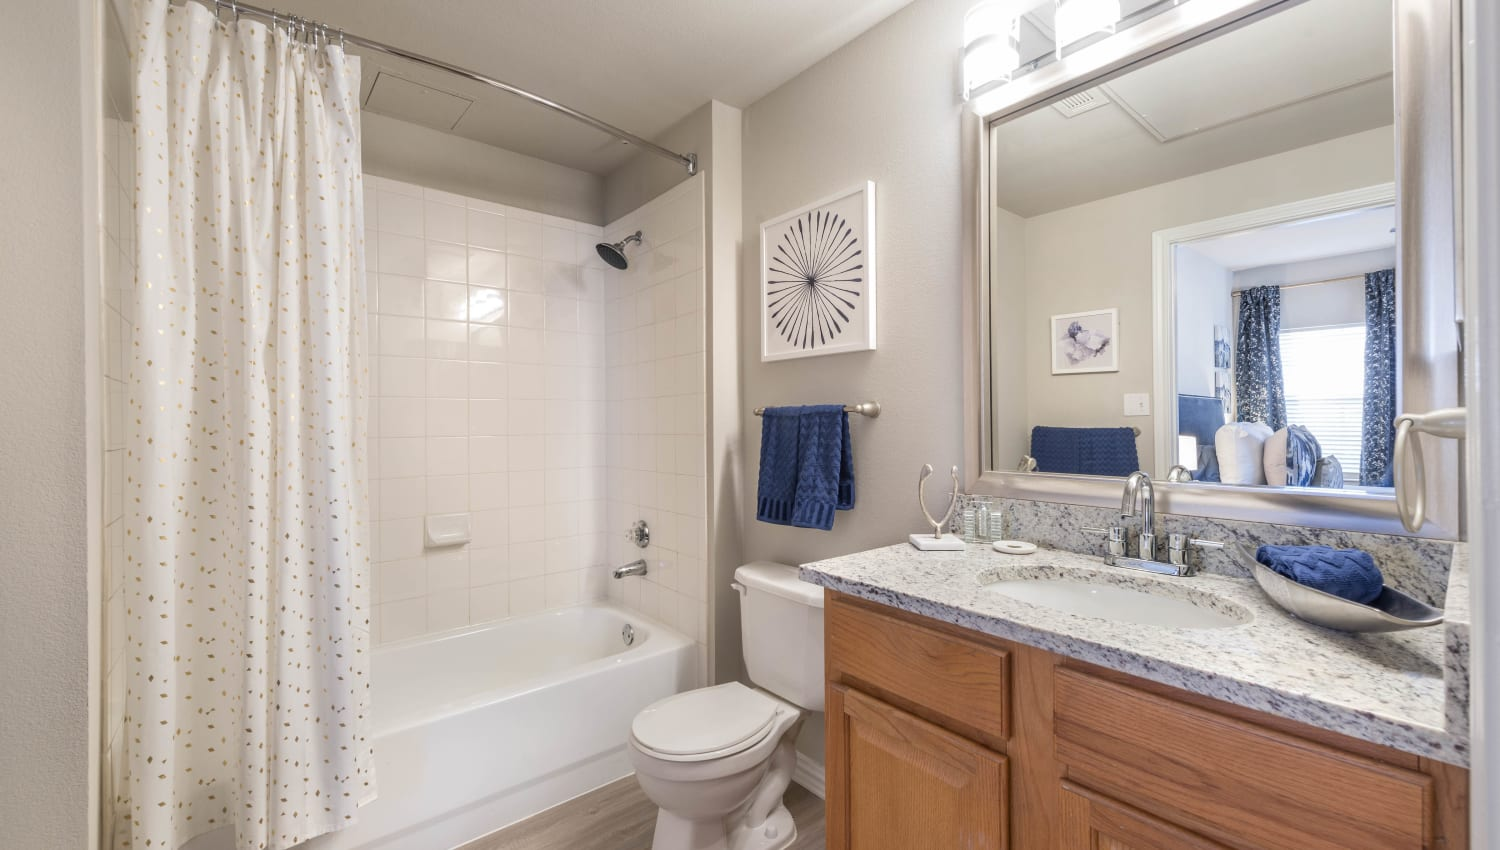 Master bathroom with a granite countertop and large vanity mirror in a model home at Olympus Stone Glen in Keller, Texas